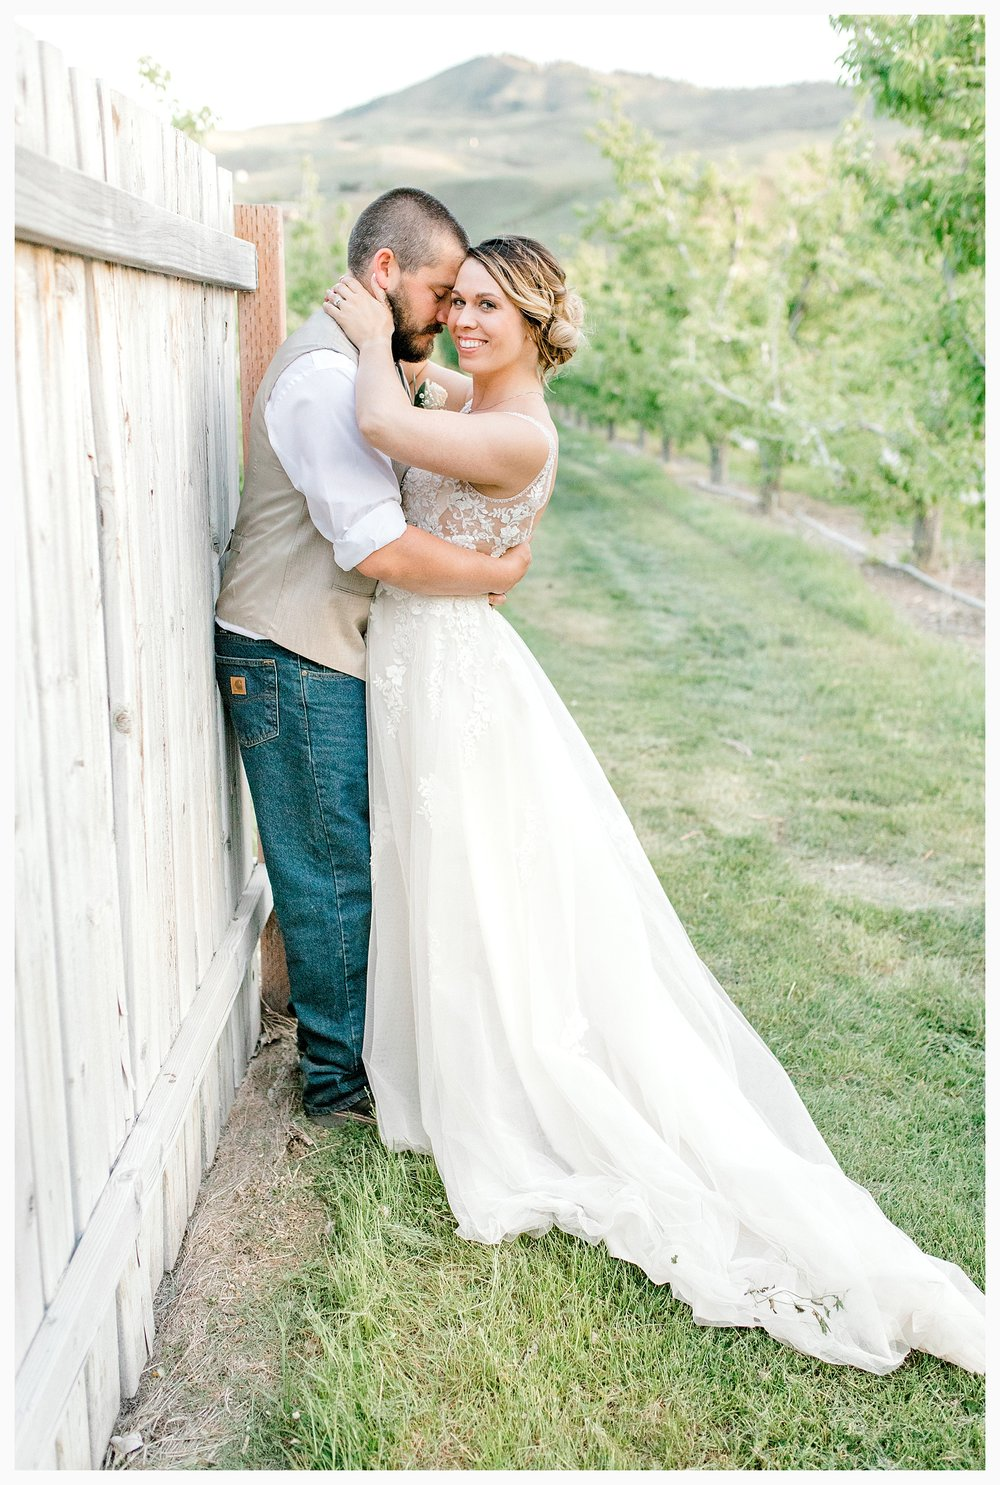 Rustic barn wedding in Wenatchee Washington at Sunshine Ranch on Easy Street, Emma Rose Company Seattle PNW Light and Airy Wedding Photographer_0141.jpg